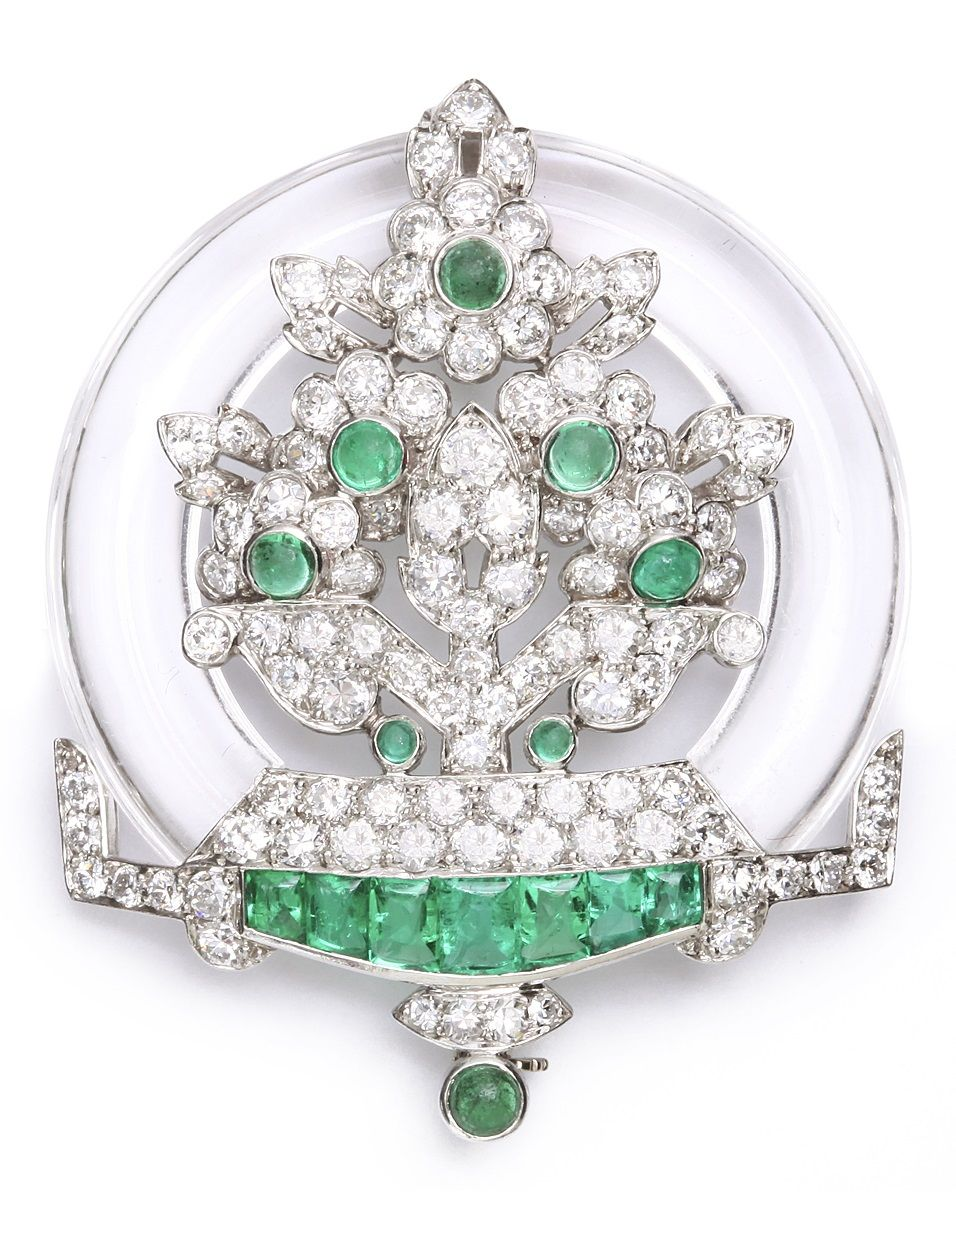 Art Deco rock crystal, emerald, and diamond circular brooch, set in platinum, American, circa 1935.